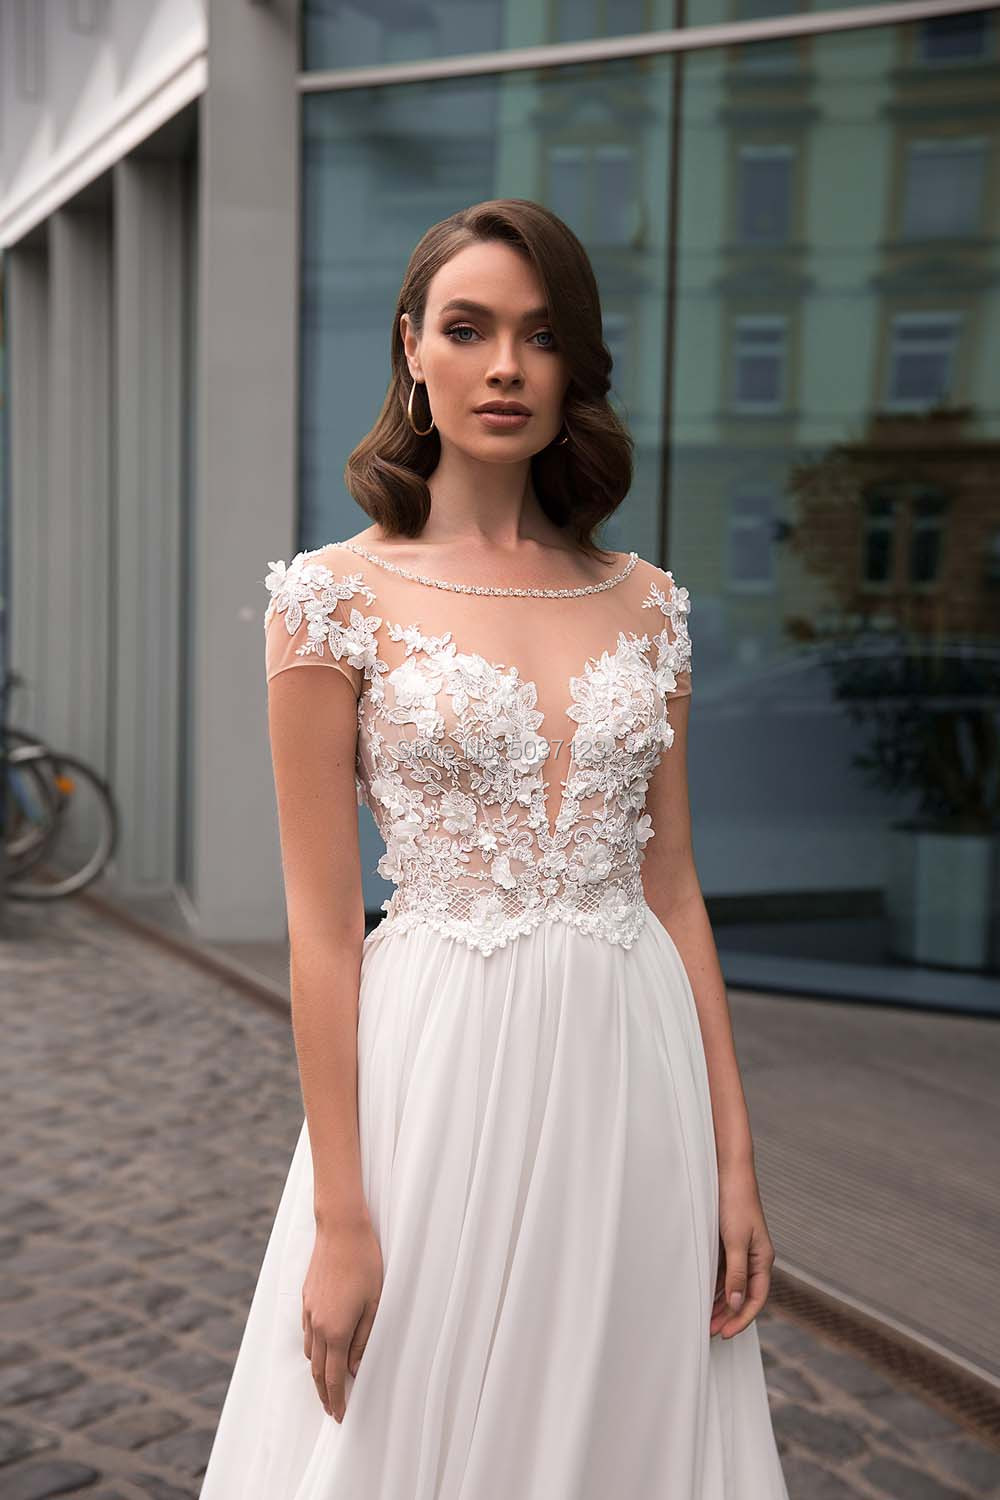 Image 3 - A Line Chiffon Short Sleeves Wedding Dresses Lace Appliques Bridal Gowns Open Back Sweep Train Vestido De Noiva-in Wedding Dresses from Weddings & Events